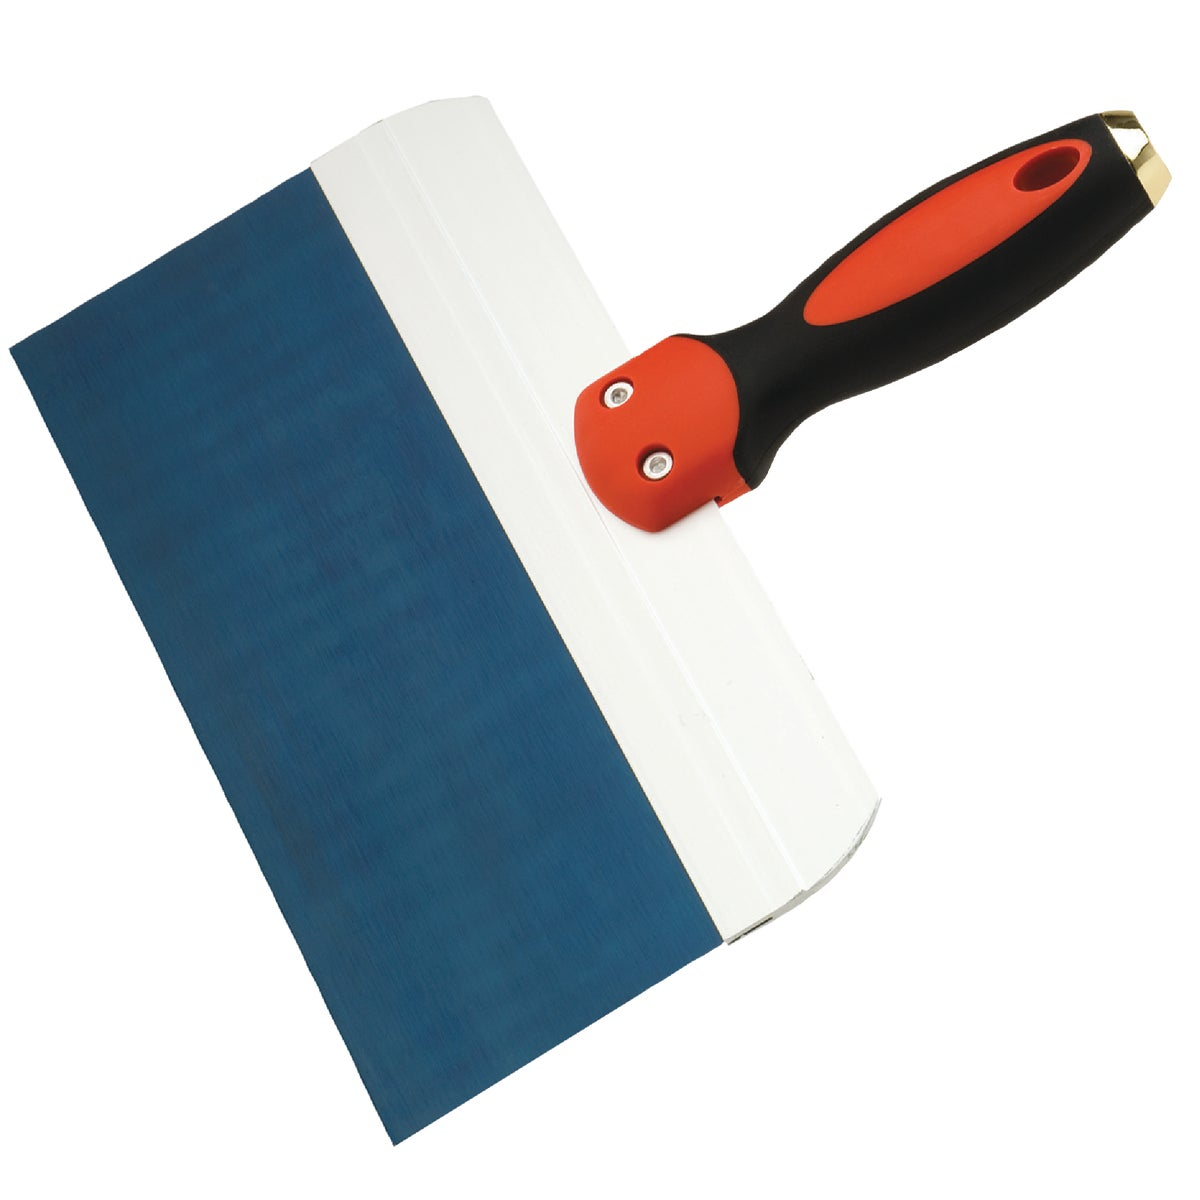 "10"" BLU STL TAPING KNIFE - 323073 by Do it Best"